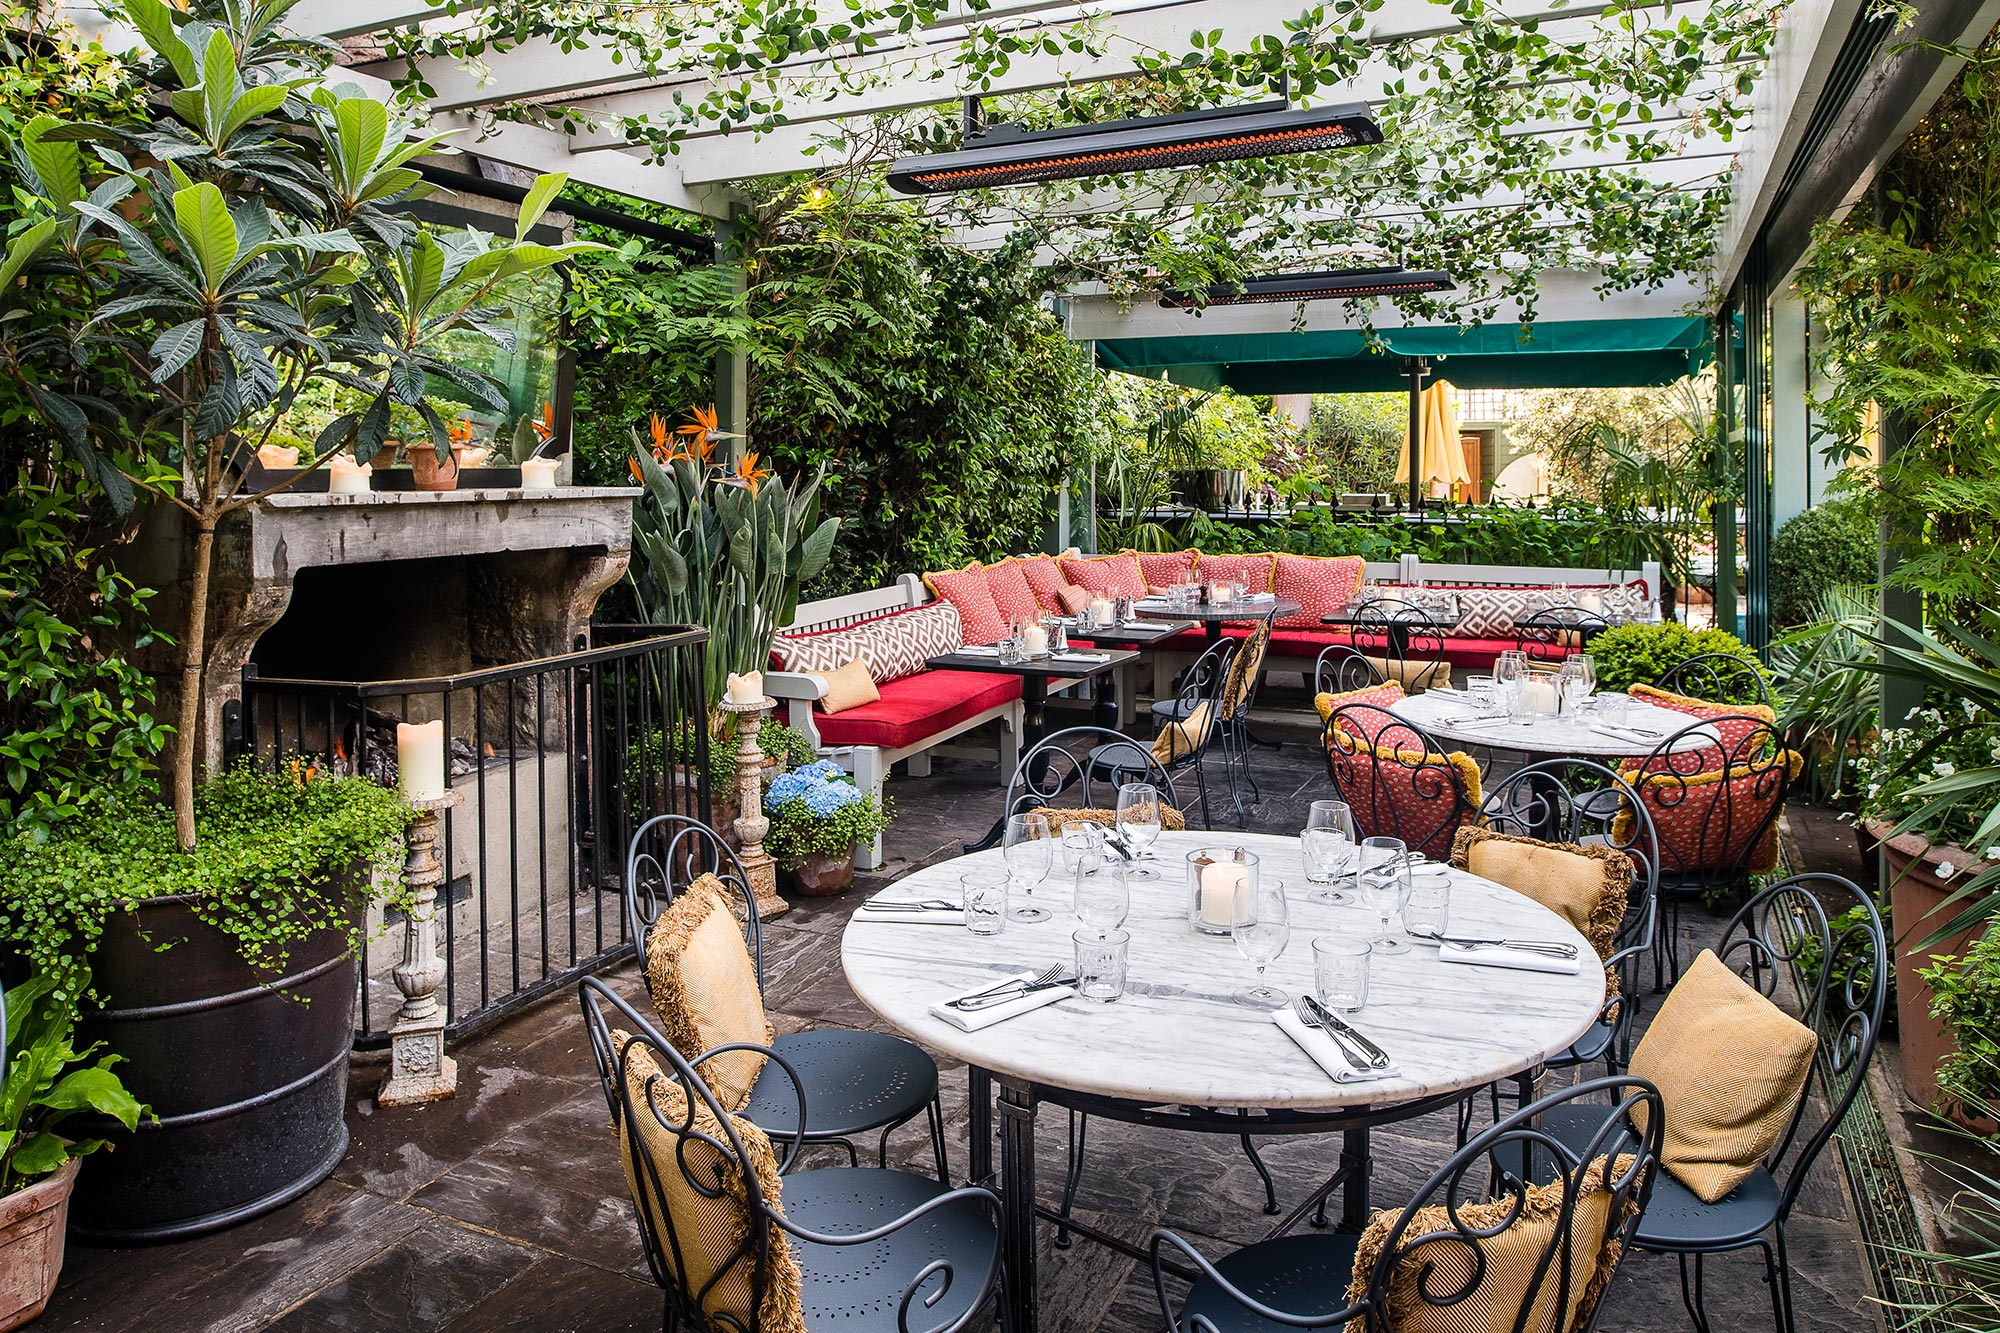 Outdoor Seatings at The Ivy Chelsea Garden - The Ivy Chelsea Garden